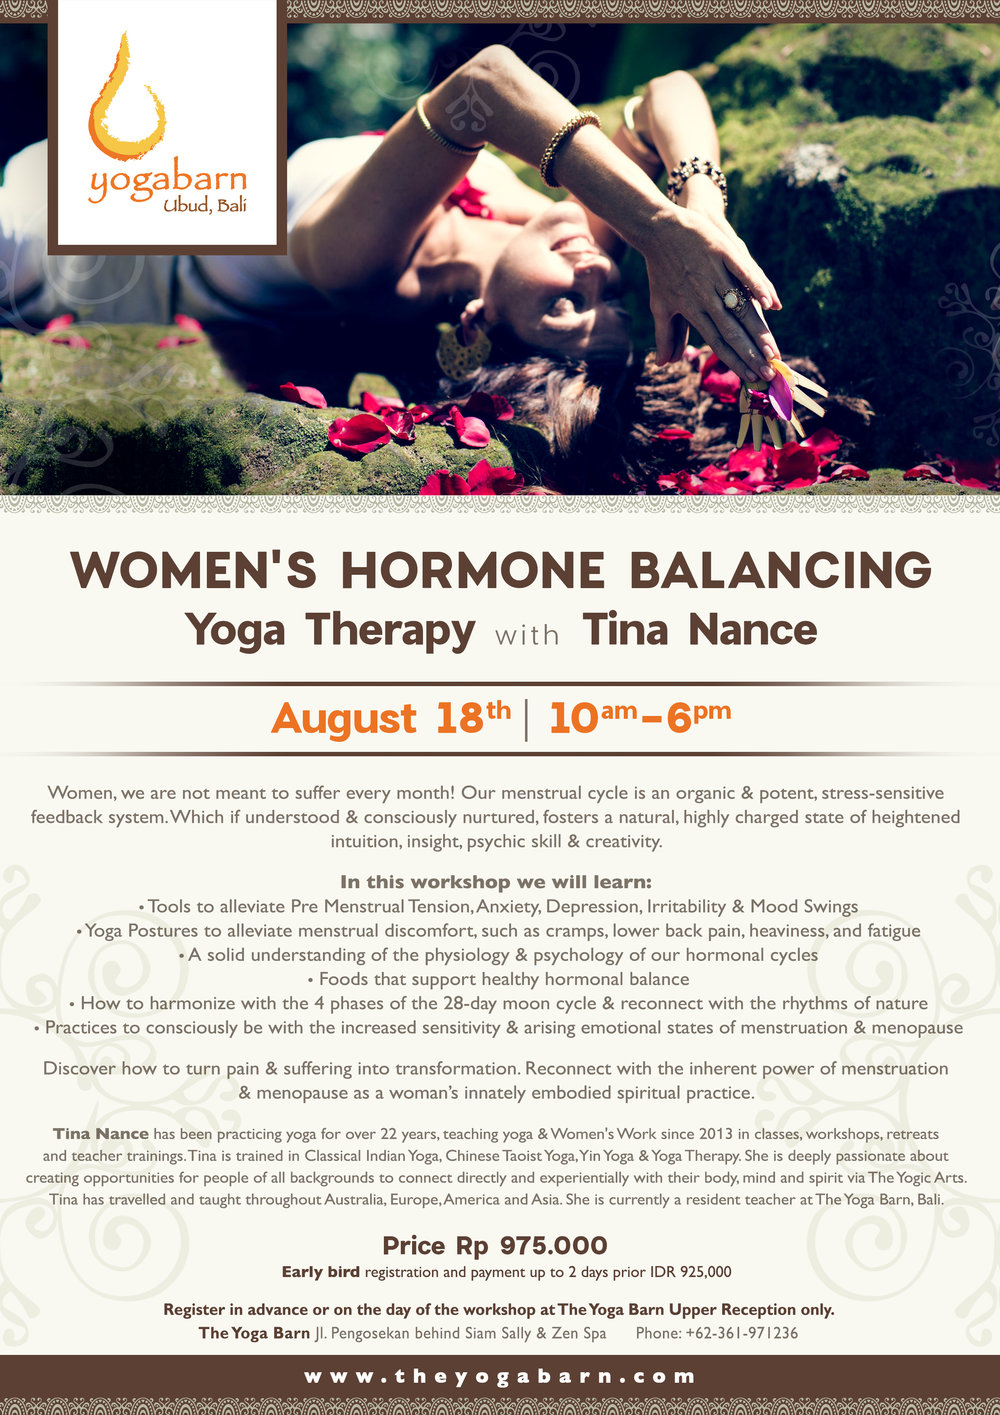 Yoga Therapy: Women's Hormone Balancing with Tina NanceAugust 18 / 10:00 AM-6:00 PM / Rp 975.000*Early Bird registration and payment up to 2 days prior Rp 925.000 - Women, we are not meant to suffer every month! Our menstrual cycle is an organic & potent, stress-sensitive feedback system. Which if understood & consciously nurtured, fosters a natural, highly charged state of heightened intuition, insight, psychic skill & creativity.In this workshop we will learn:Tools to alleviate Pre Menstrual Tension, Anxiety, Depression, Irritability & Mood SwingsYoga Postures to alleviate menstrual discomfort, such as cramps, lower back pain, heaviness, and fatigueA solid understanding of physiology & psychology of our hormonal cyclesFoods that support healthy balanceHow to harmonise with 4 phases of the 28-day moon cycle & reconnect with the rhythms of naturePractices to consciously be with the increased sensitivity & arising emotional states of menstruation and menopauseDiscover how to turn pain & suffering into transformation. Reconnect with the inherent power of menstruation & menopause as a woman's innately embodied spiritual practice.